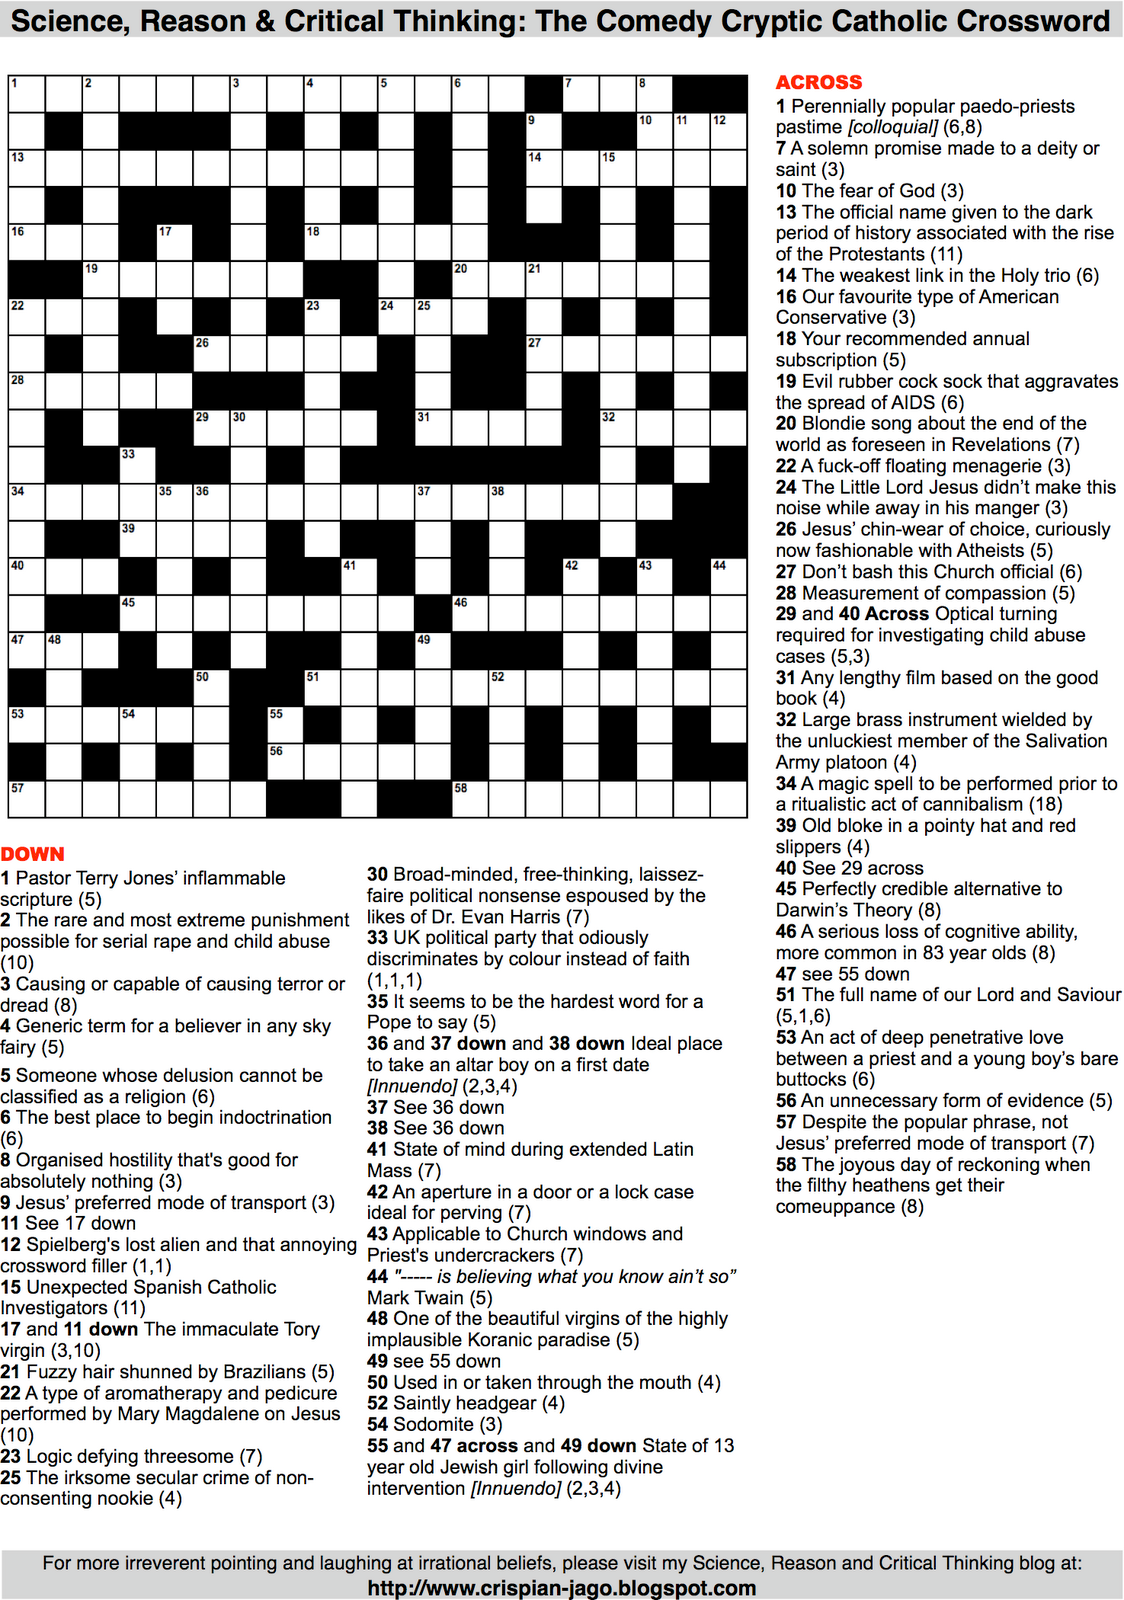 This is a picture of Decisive Star Wars Crossword Puzzles Printable